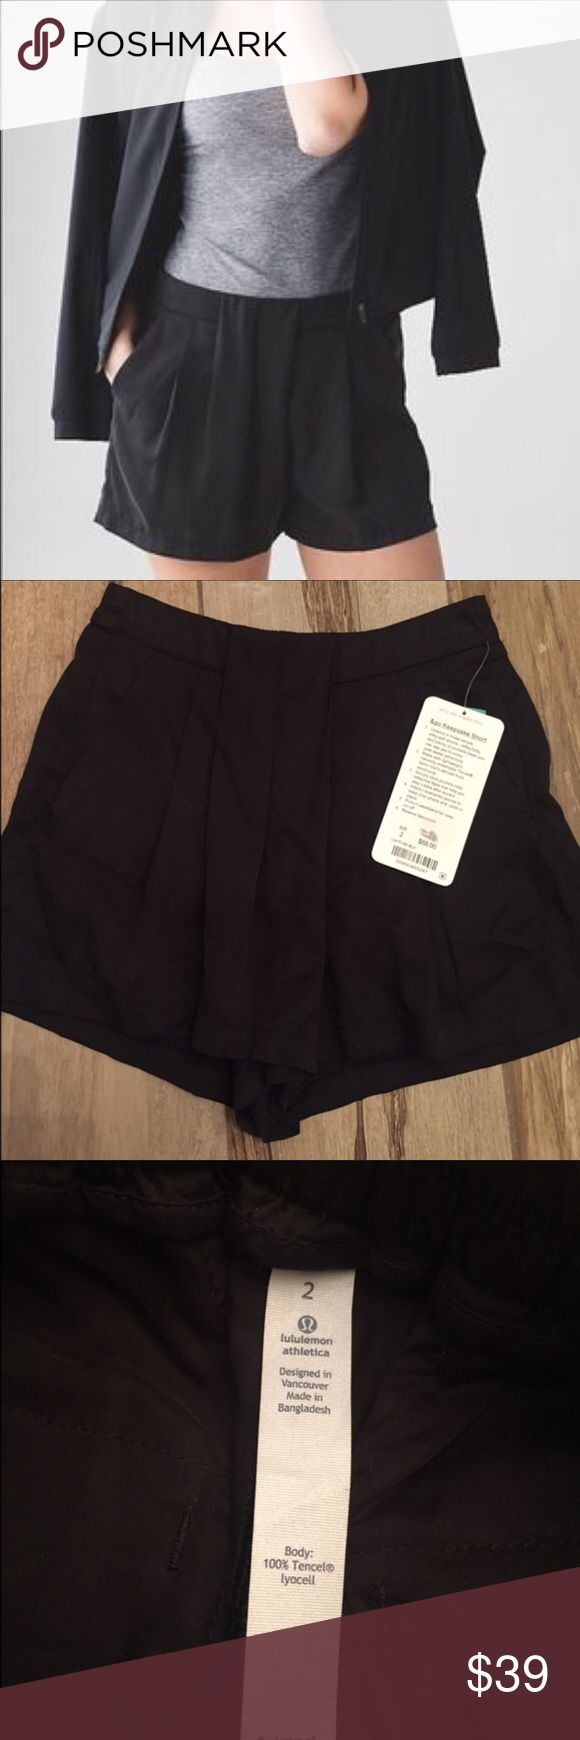 Lululemon Keepsake Short size 2 Super cute, relaxed, light weight shorts from Lululemon. Would be great for golf, tennis, jogging or casual wear! Size 2- black. lululemon athletica Shorts